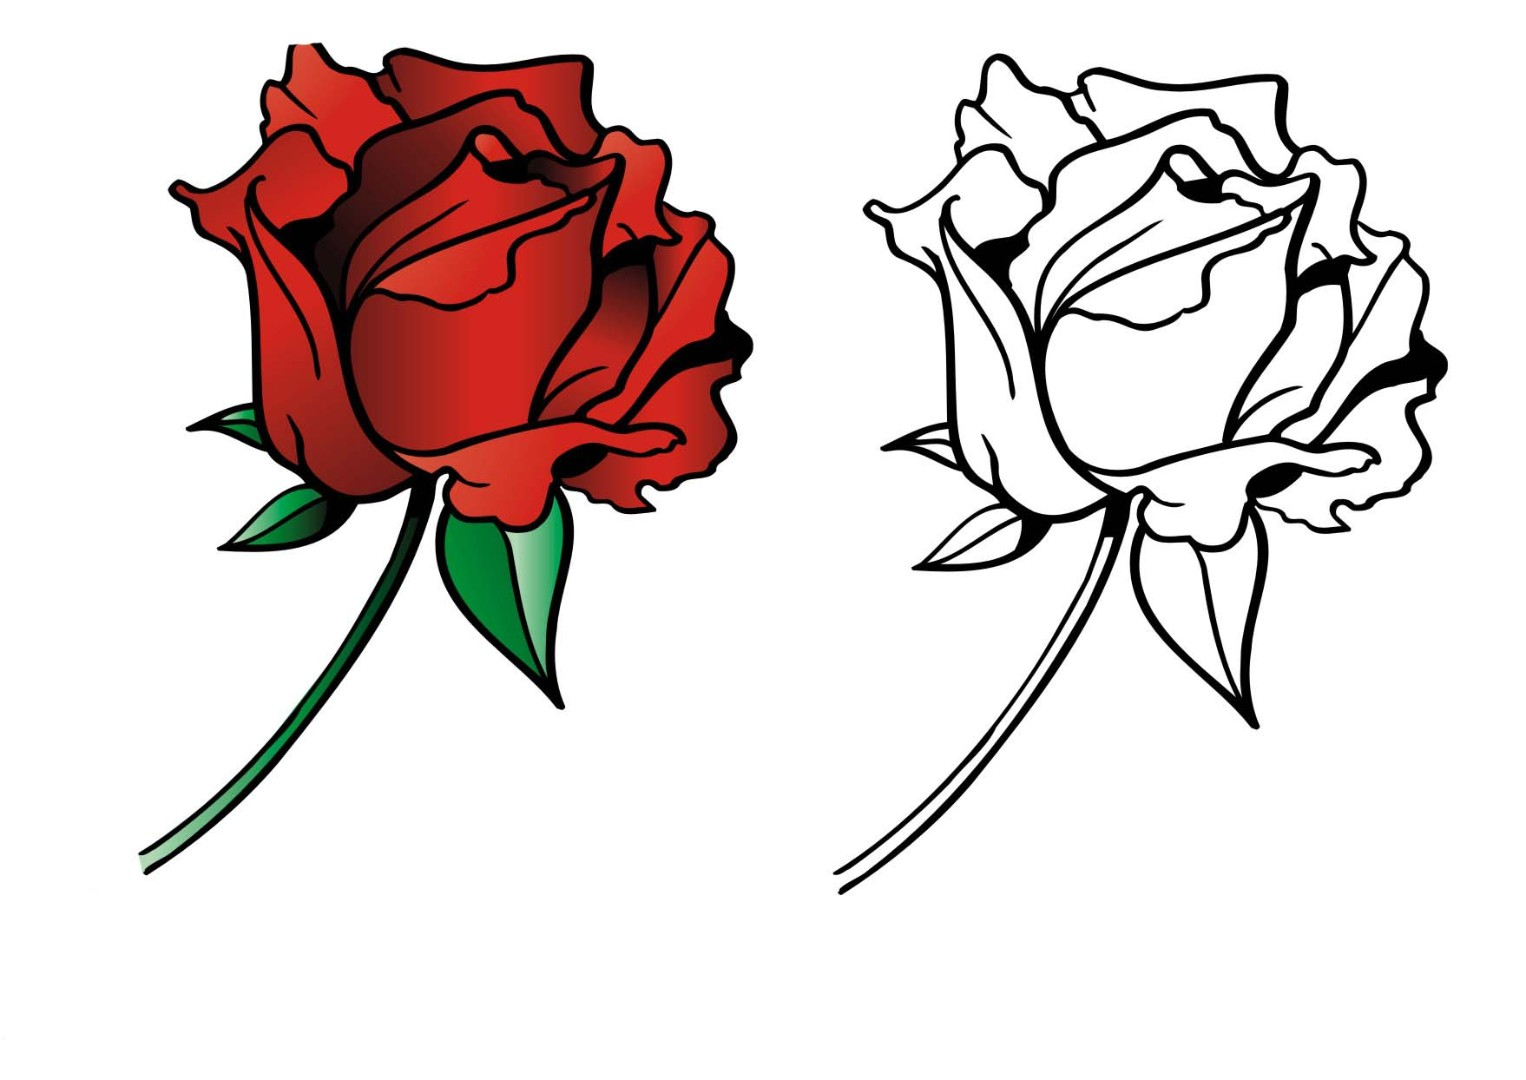 Roses coloring pages to download and print for free